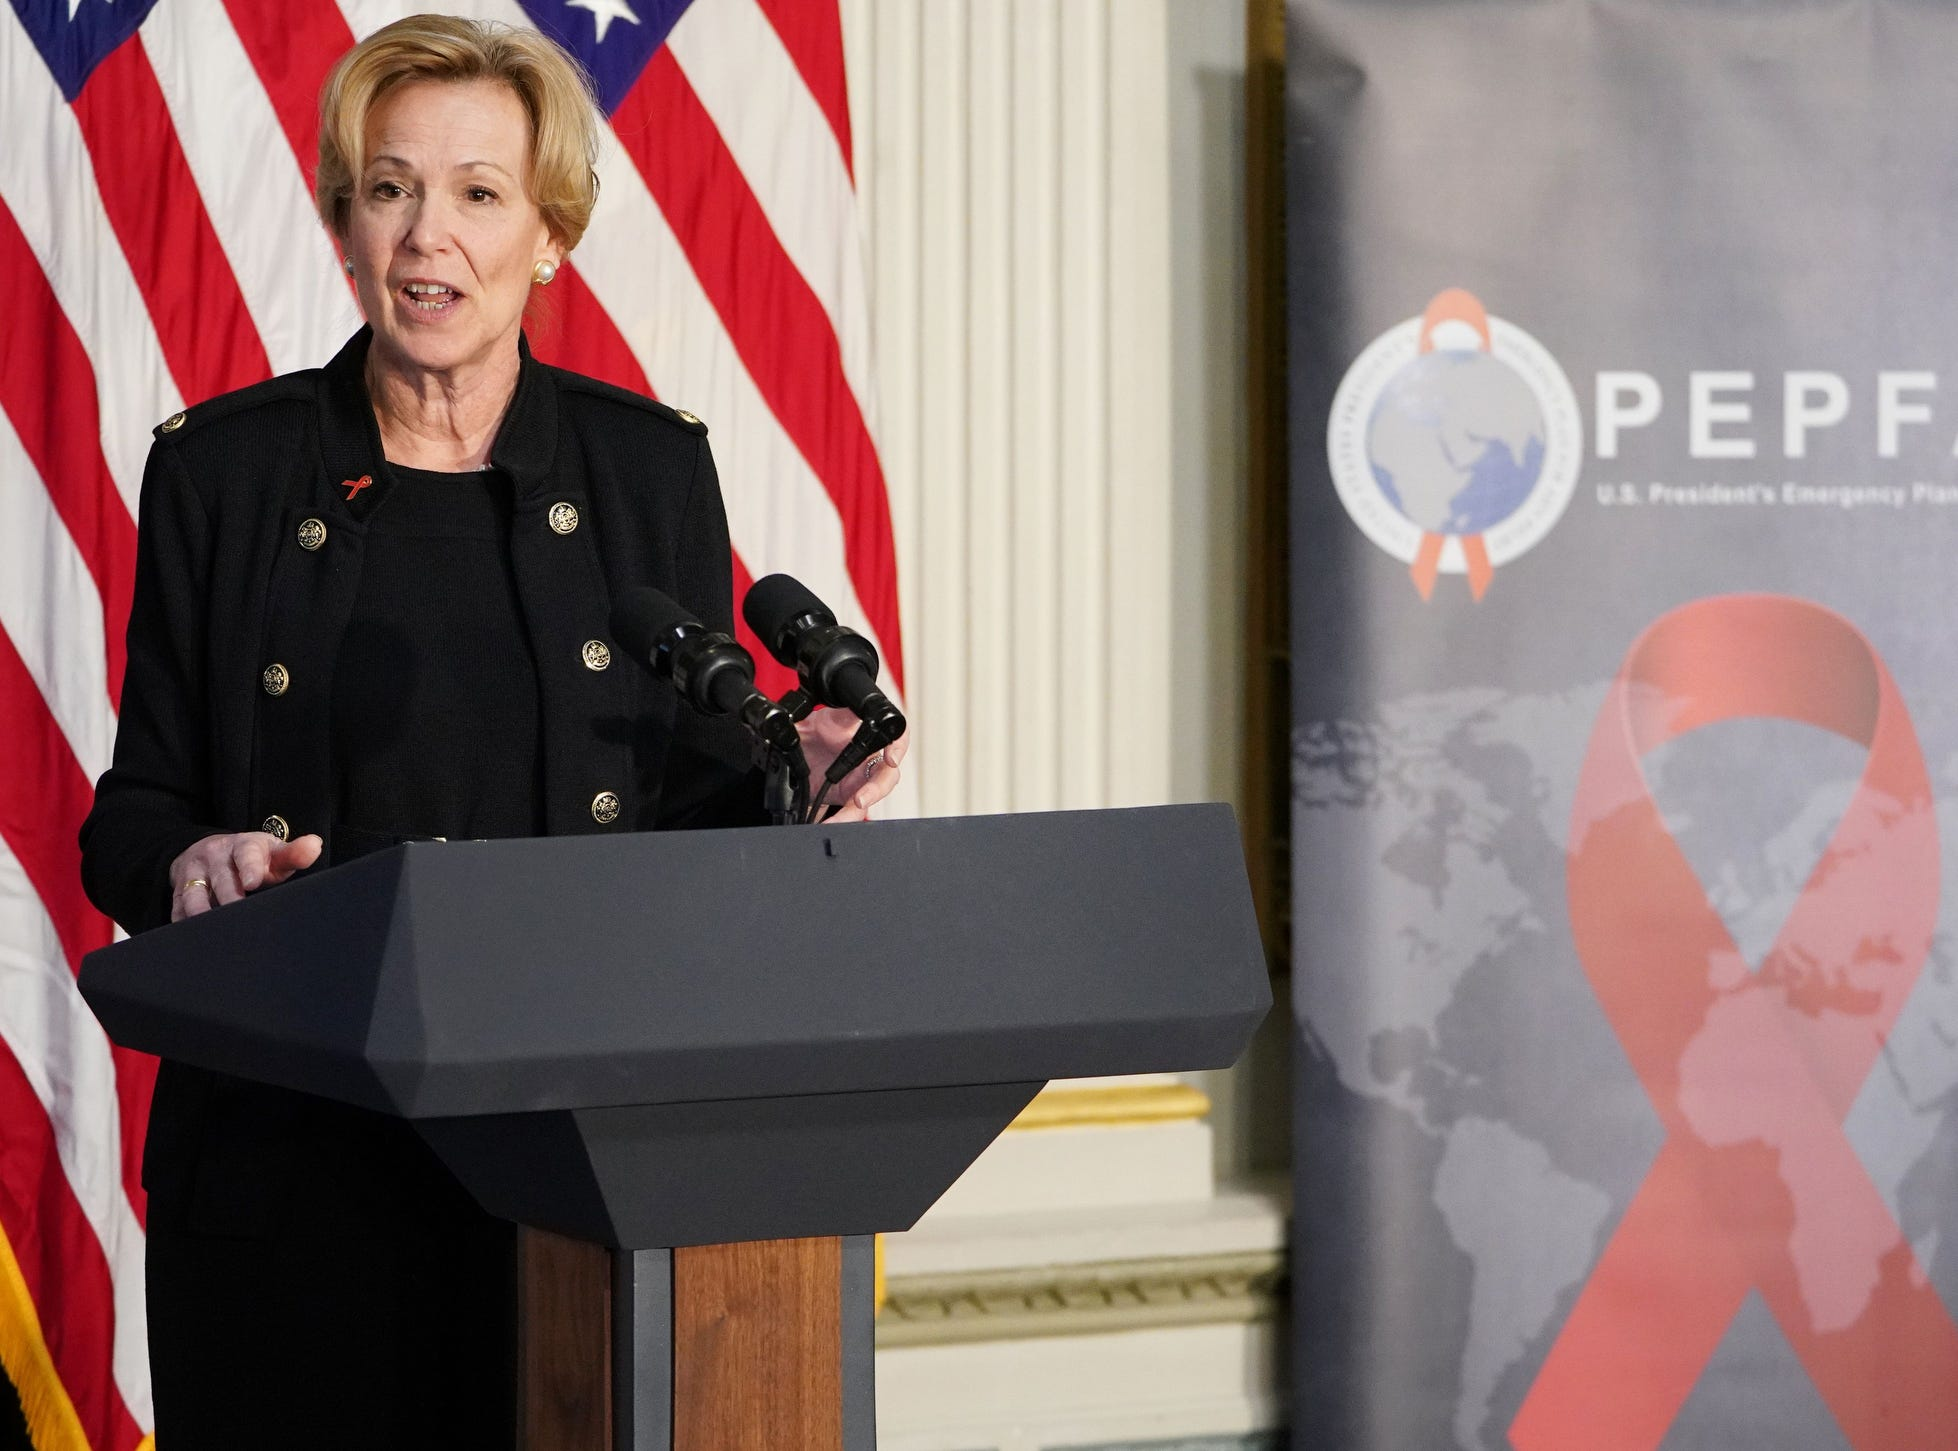 US Global AIDS Coordinator Deborah Birx speaks during a White House World AIDS Day Event in the Indian Treaty Room of the  Eisenhower Executive Office Building next to the White House in Washington, DC on Thursday.